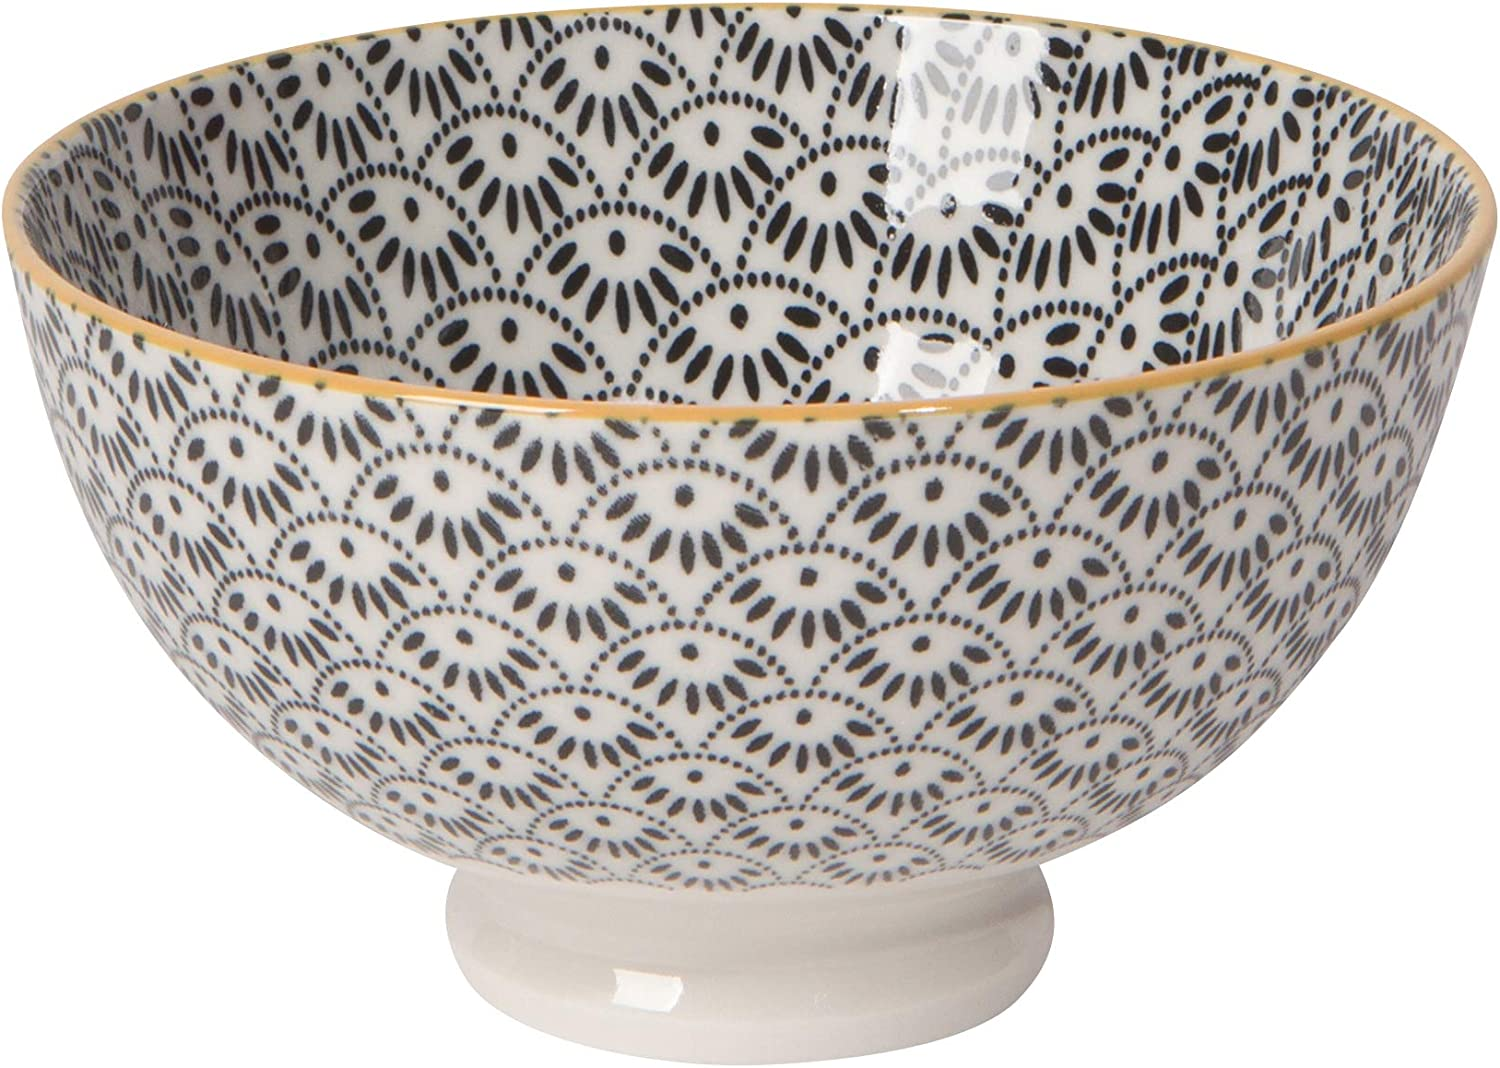 Now Designs 5042022aa Stamped Bowls 10 Max 88% OFF Quantity limited Ounce of 6 Capacity Set